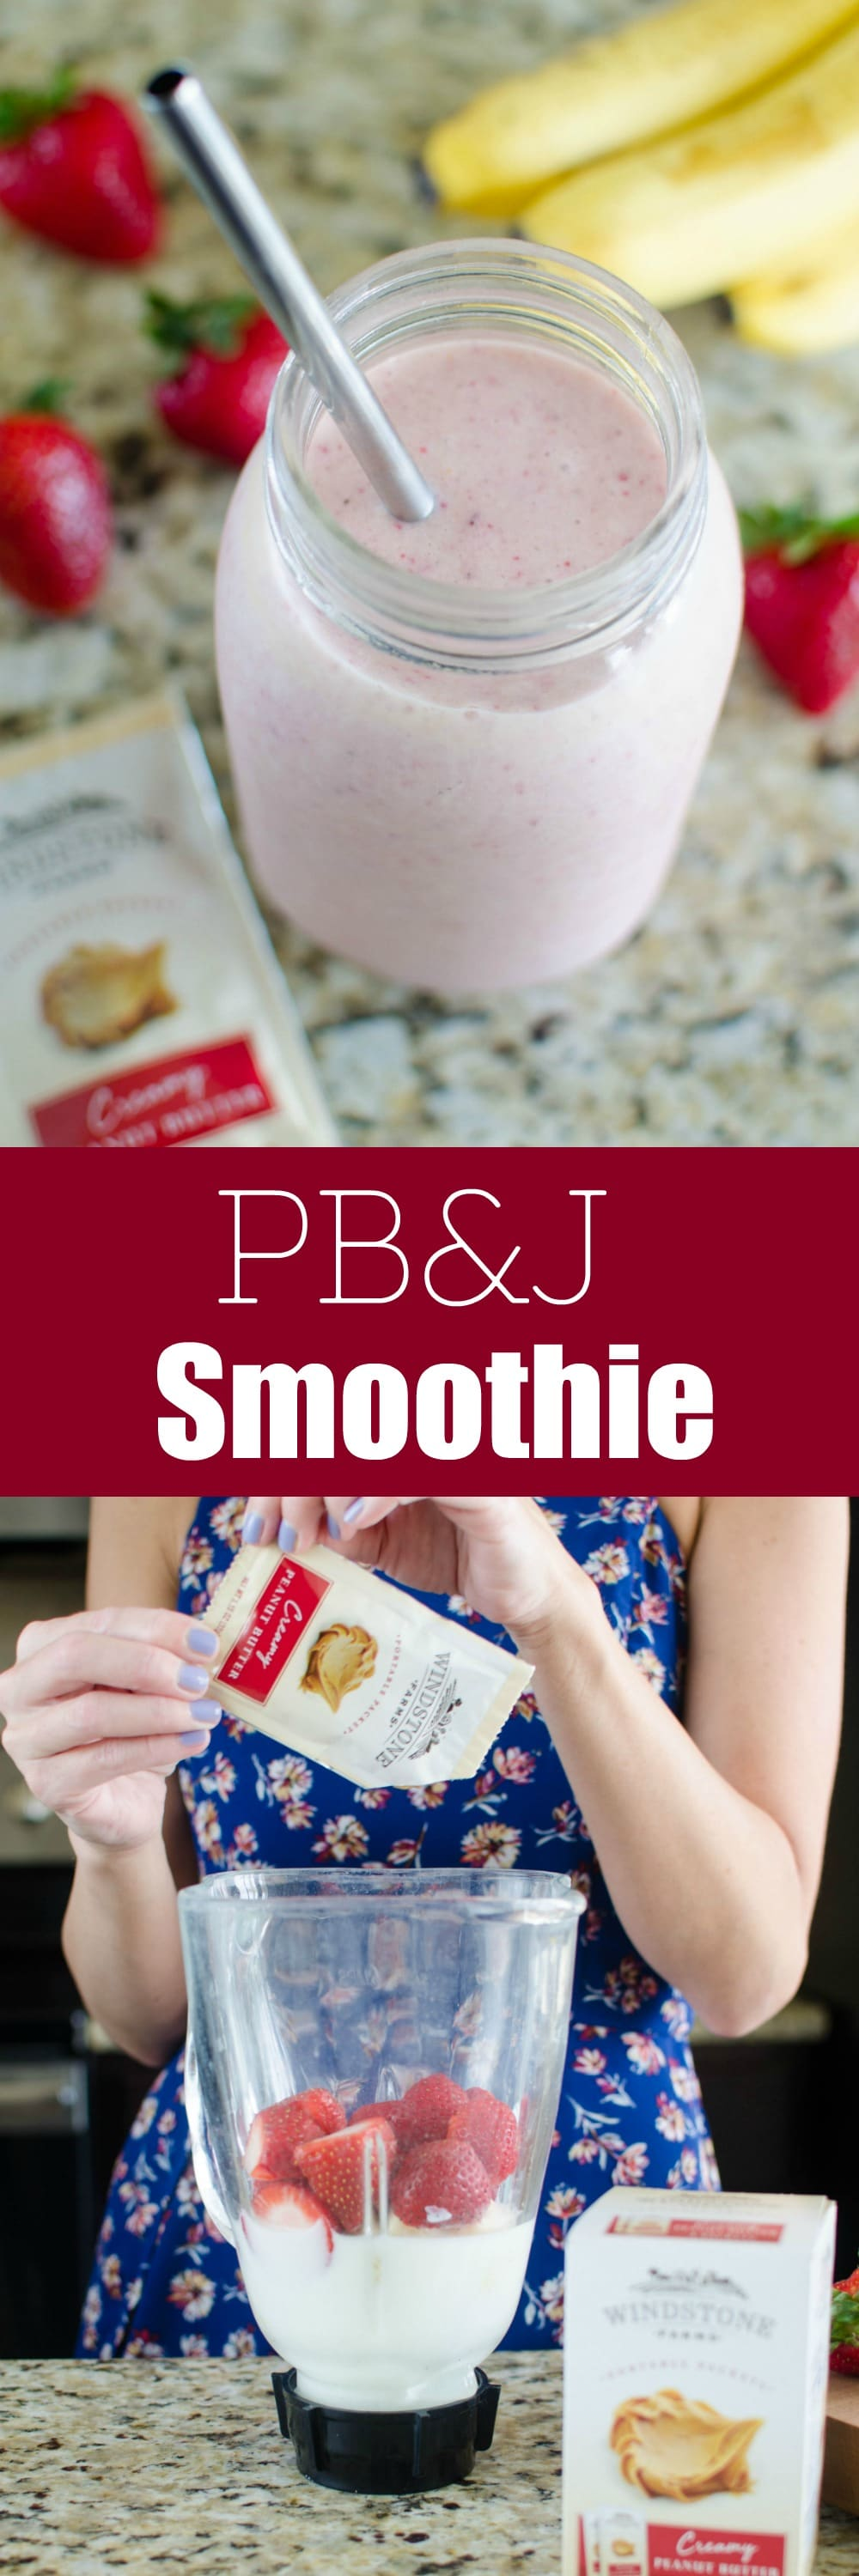 PB&J Smoothie - the classic peanut butter and jelly as a healthy smoothie! Fresh banana, strawberries, milk, and peanut butter make a delicious, protein packed breakfast or snack!